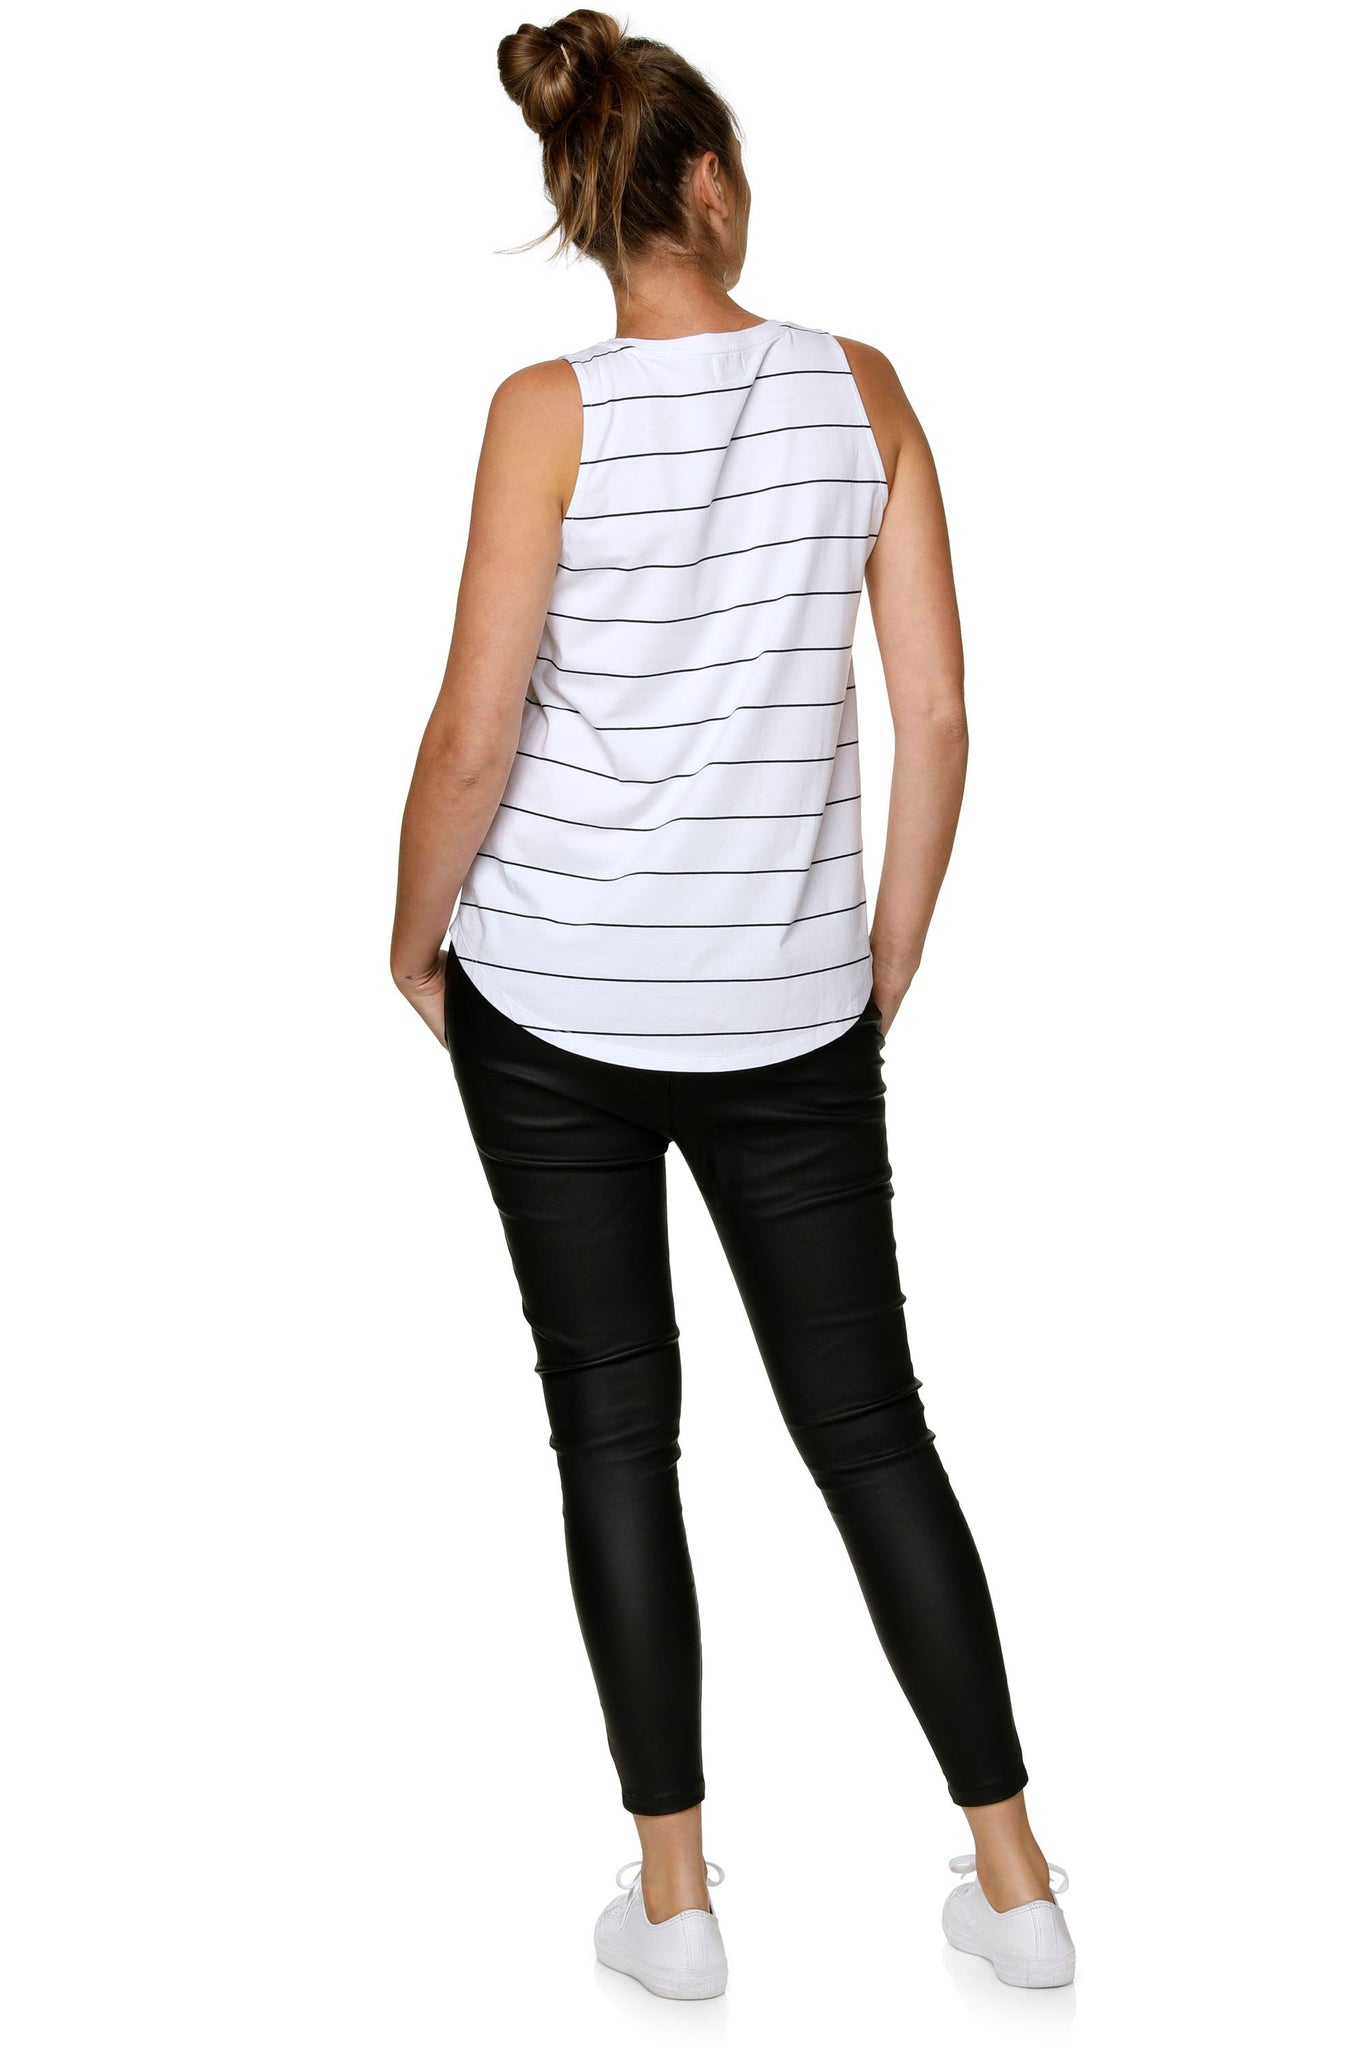 Maternity + Nursing Tank Top - White Stripe 8